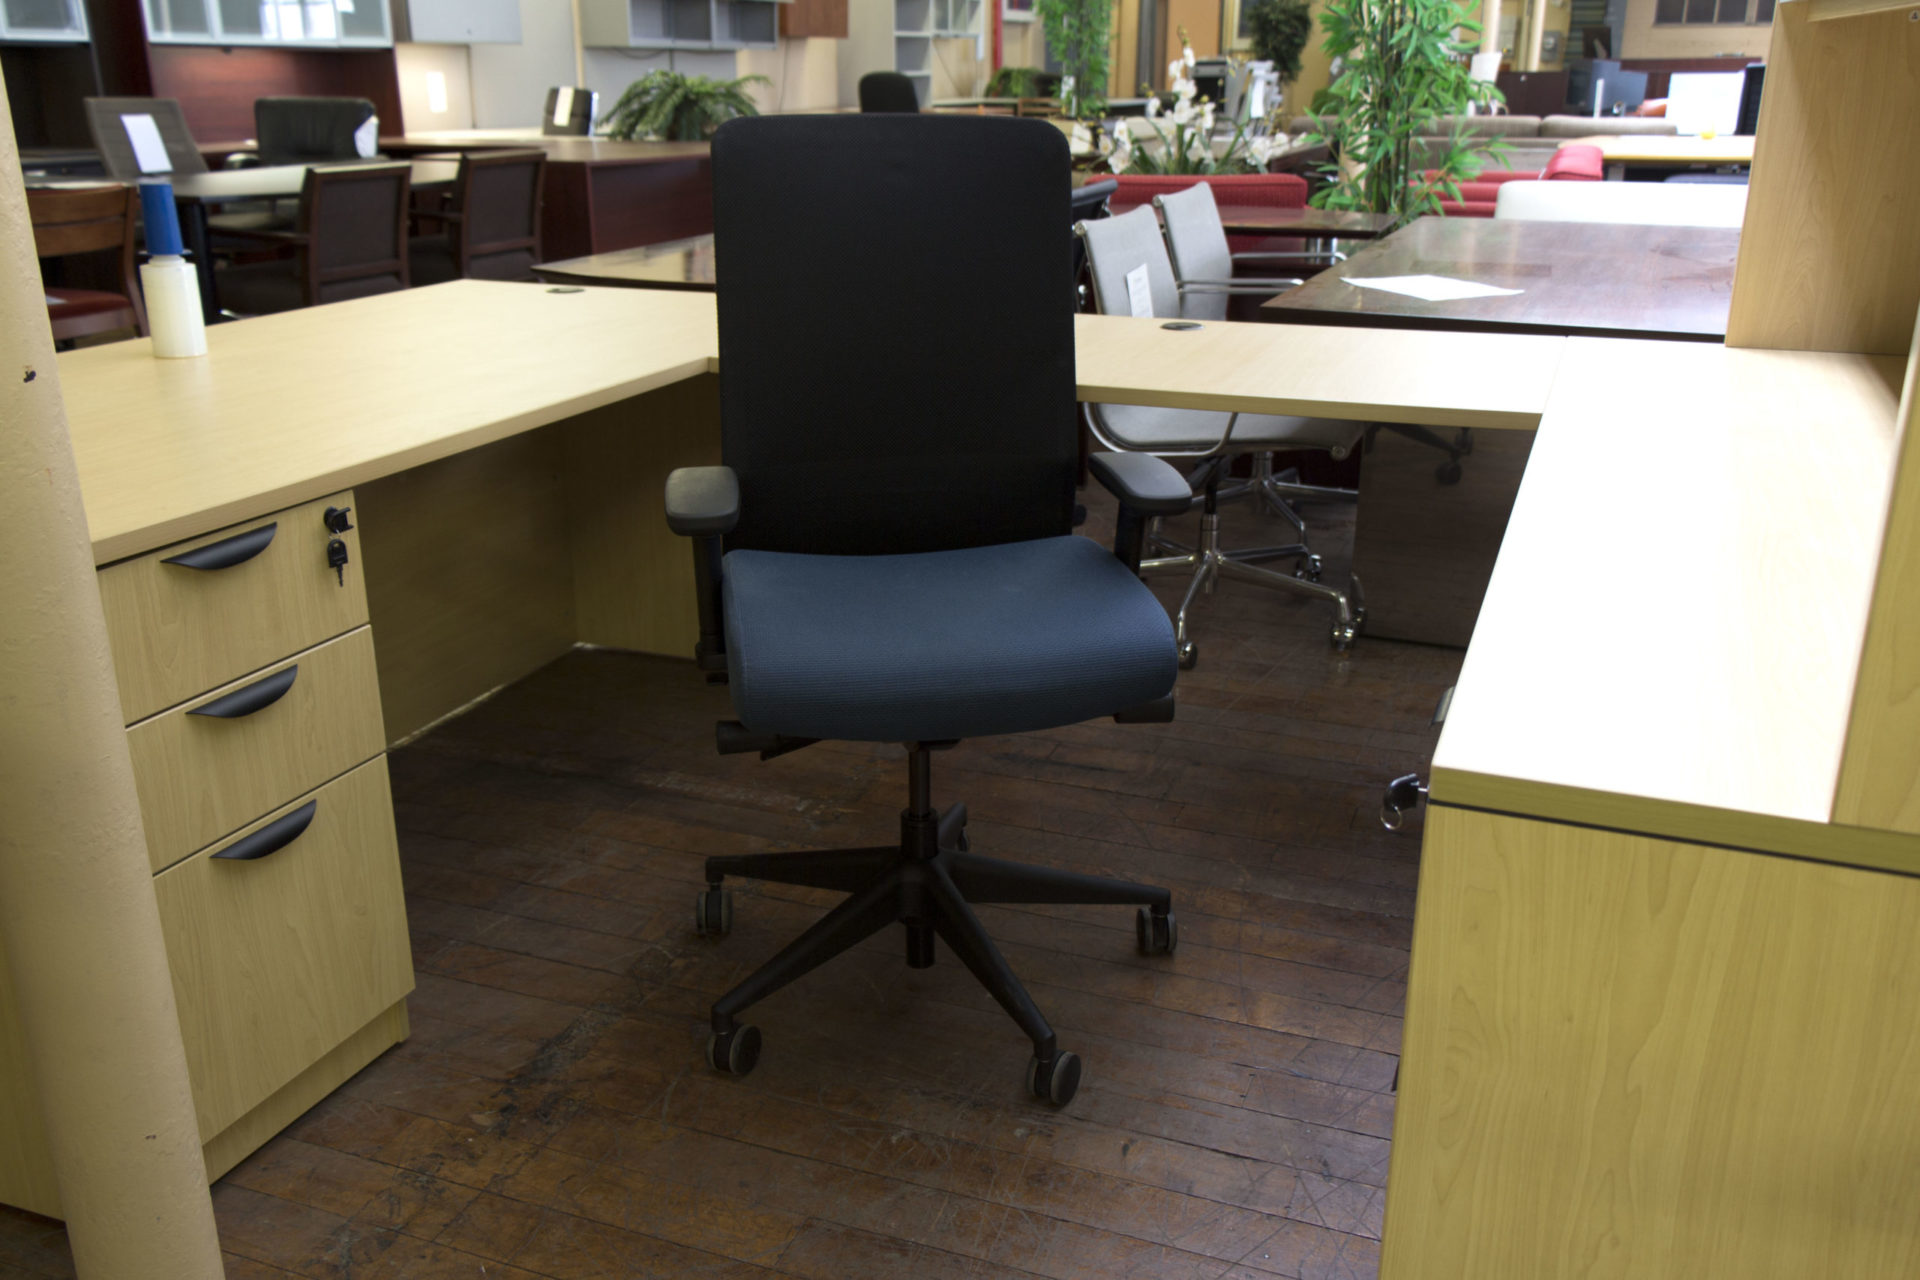 peartreeofficefurniture_peartreeofficefurniture_mg_5528.jpg